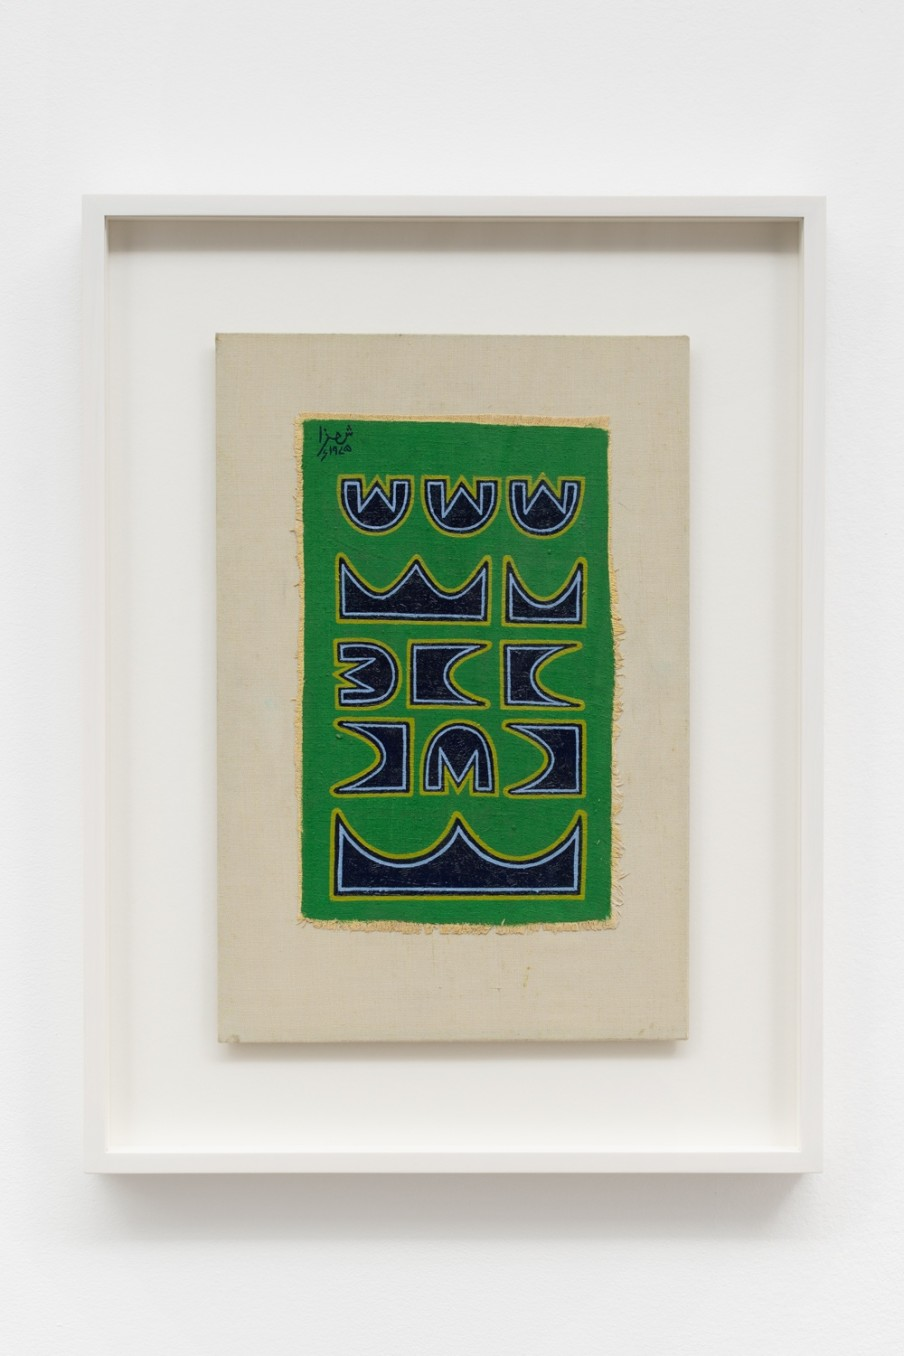 Anwar Jalal Shemza, Indigo On Green, 1975, Oil On Canvas On Silk On Hardboard Mount, 38 x 25 cm, Framed: 52.7 x 40 x 3.6 cm